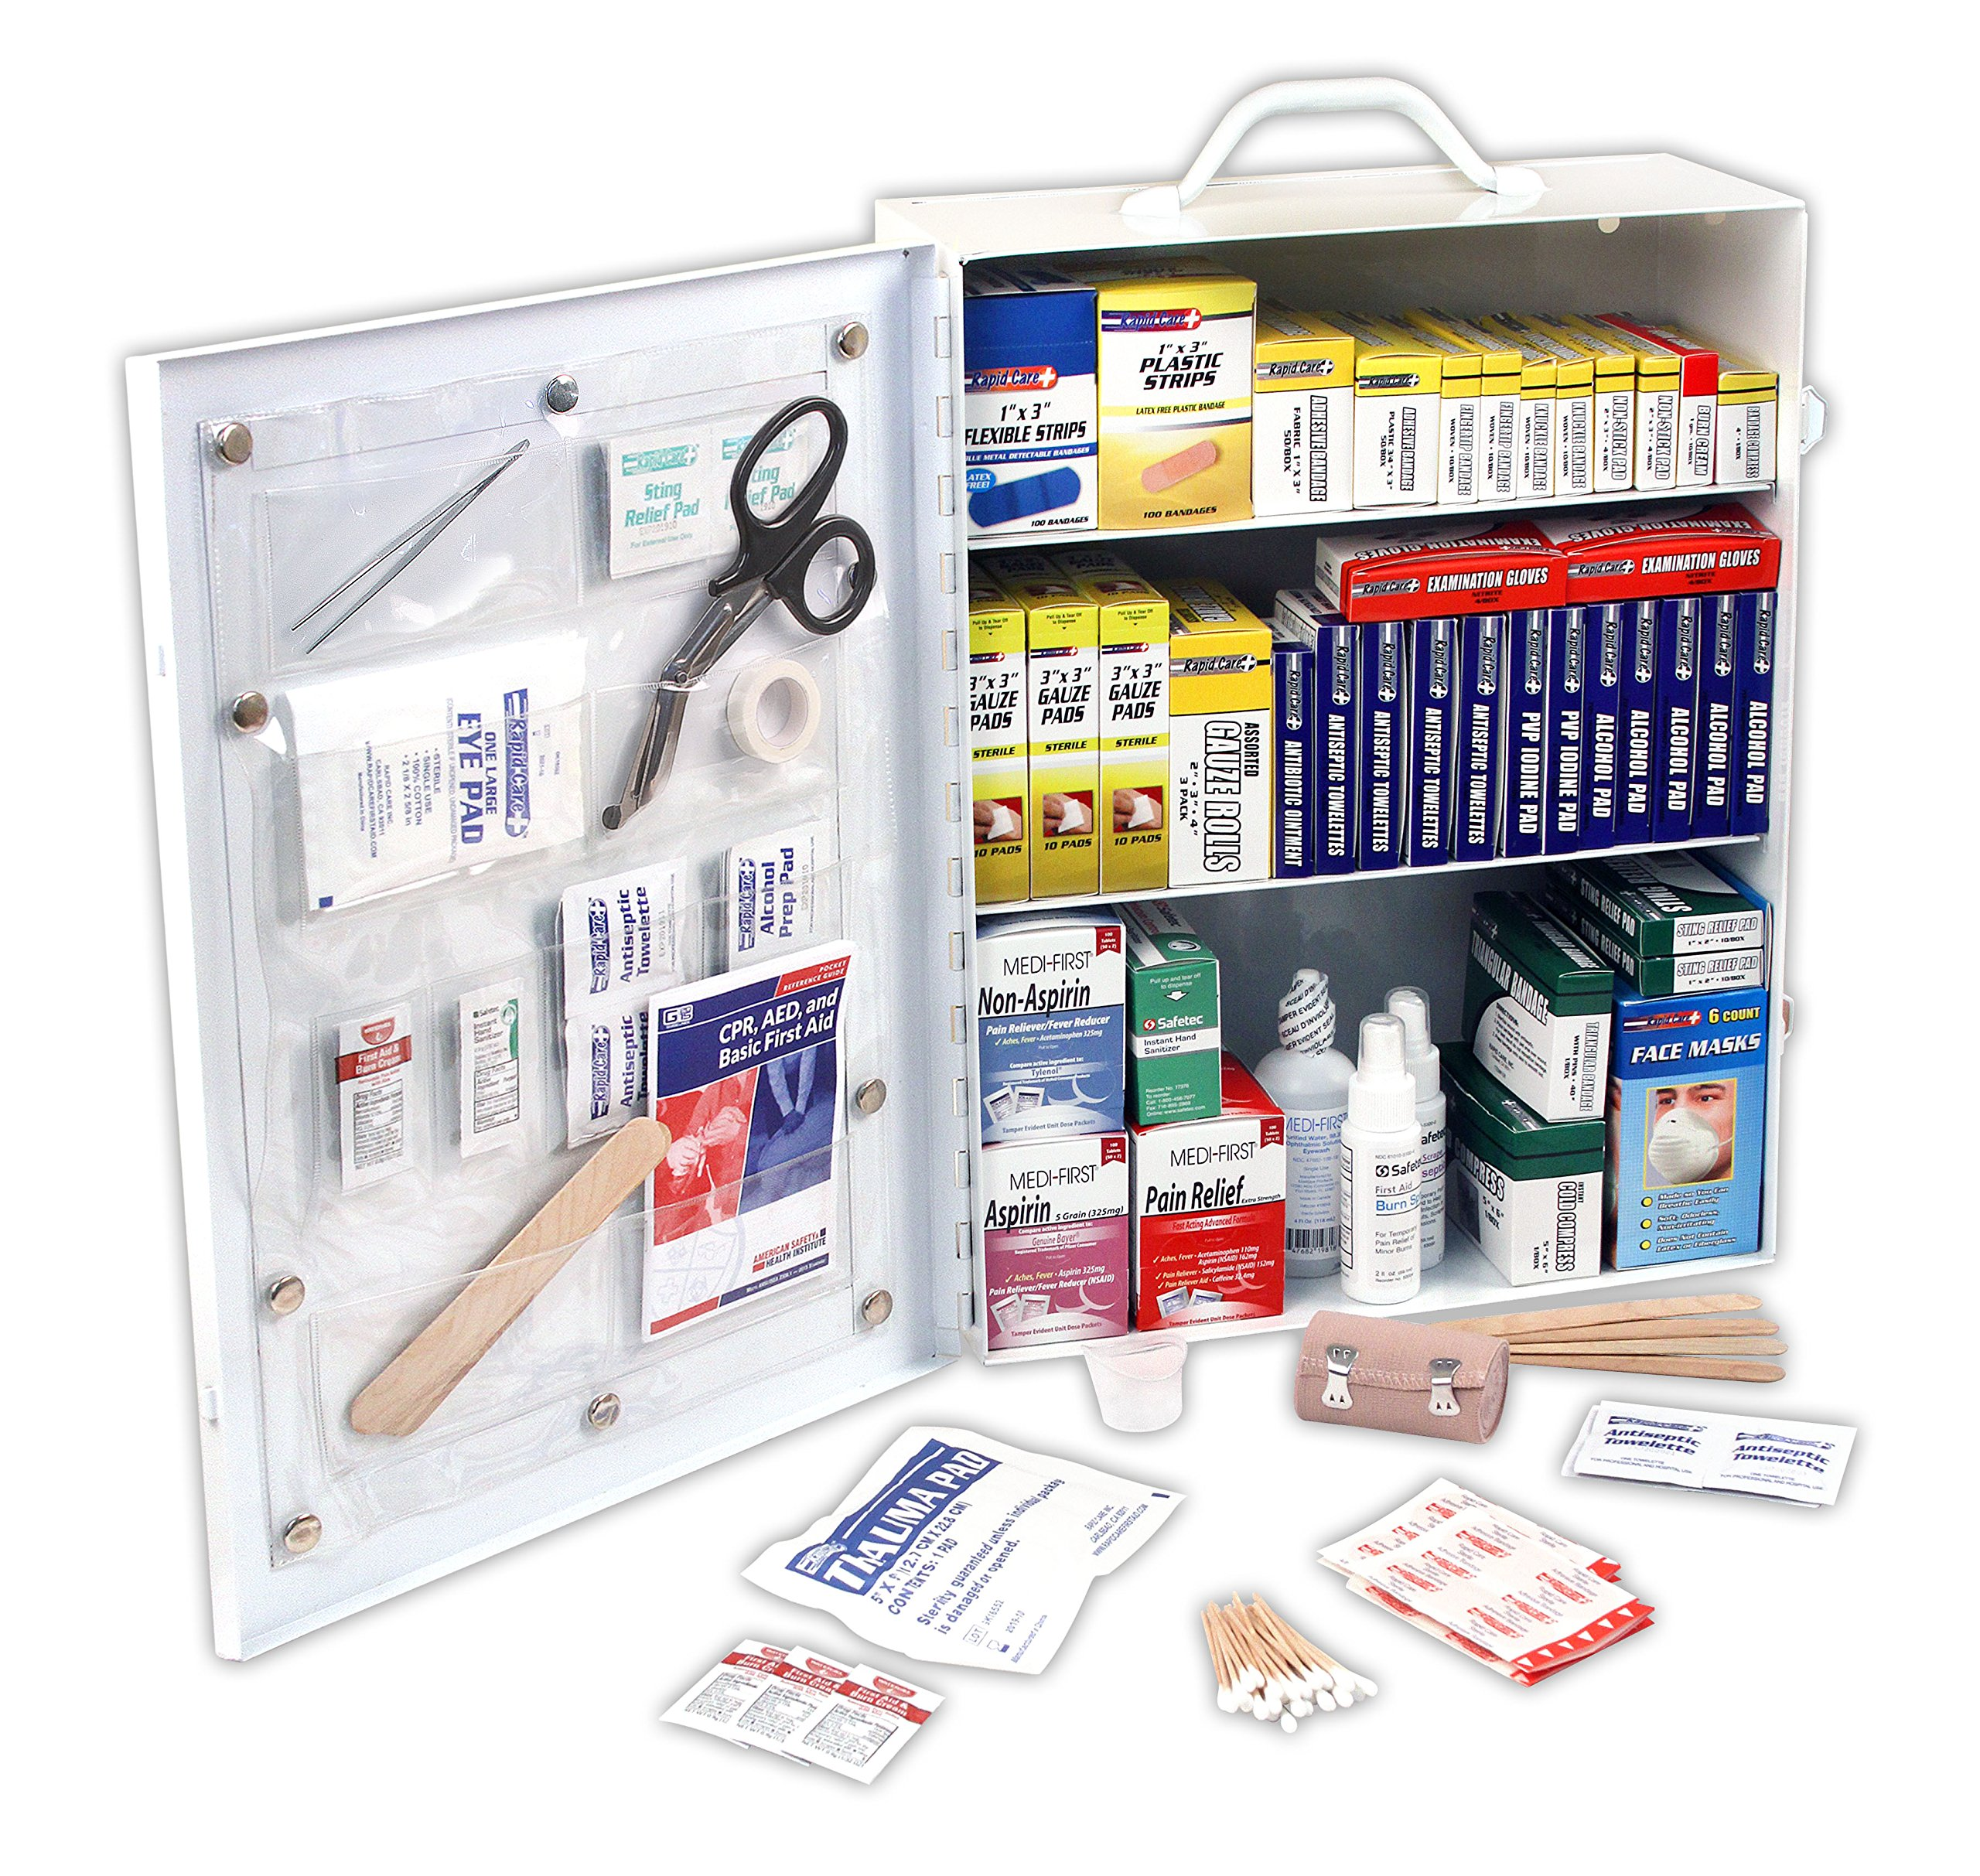 Rapid Care First Aid 80094 3 Shelf OSHA/ANSI First Aid Cabinet by Rapid Care First Aid